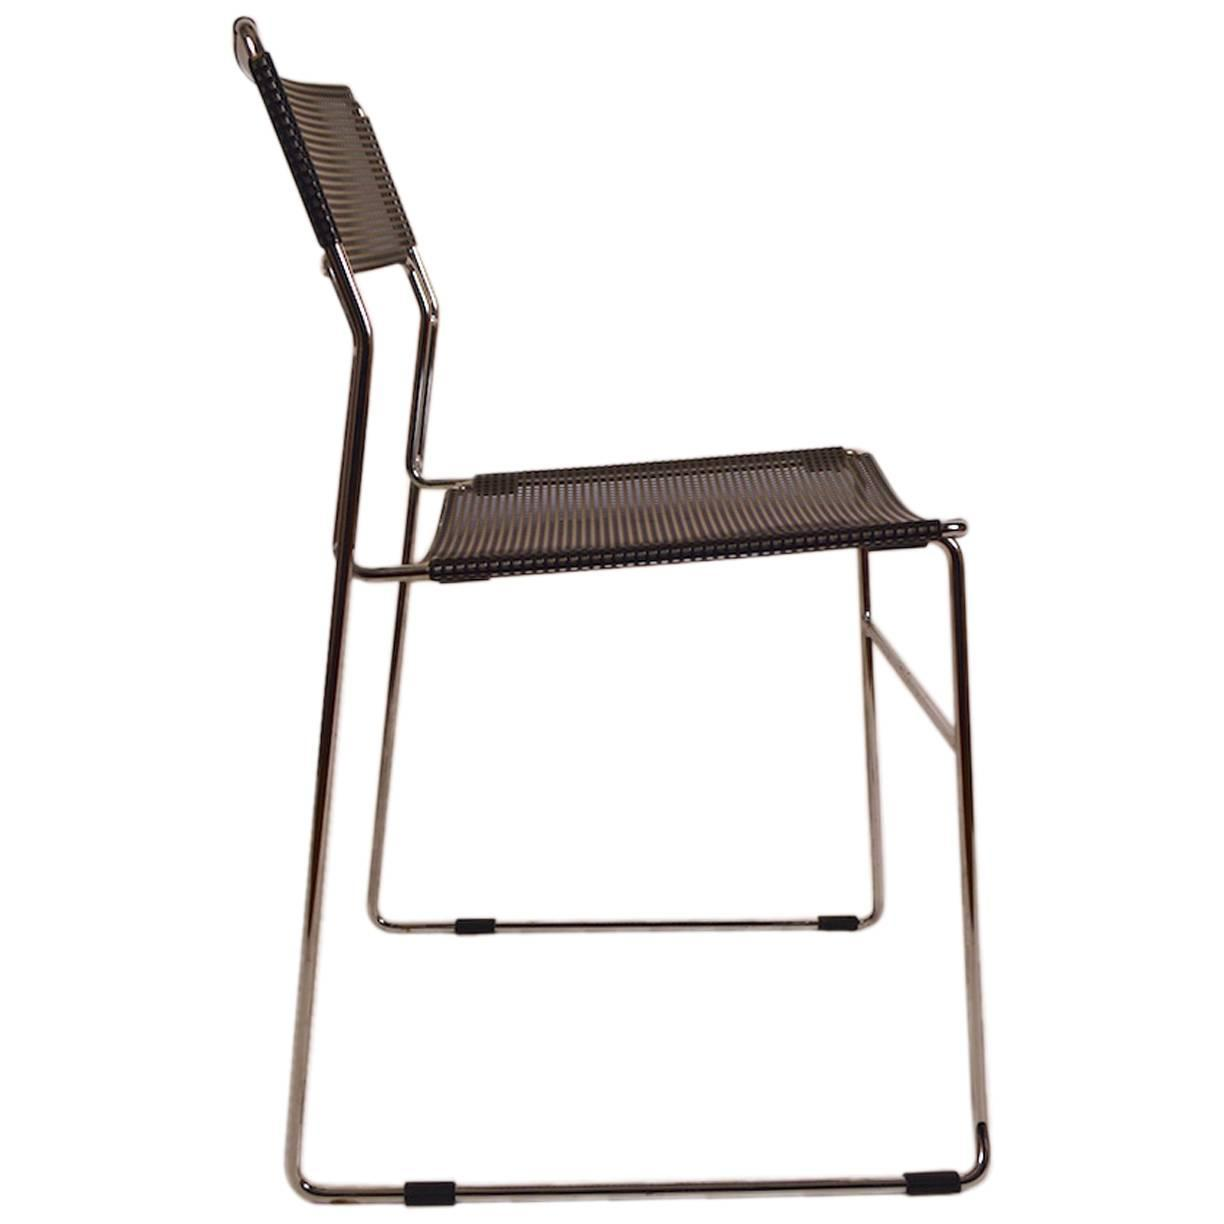 Charmant Black And Chrome Metal Mesh Chair For Sale At 1stdibs